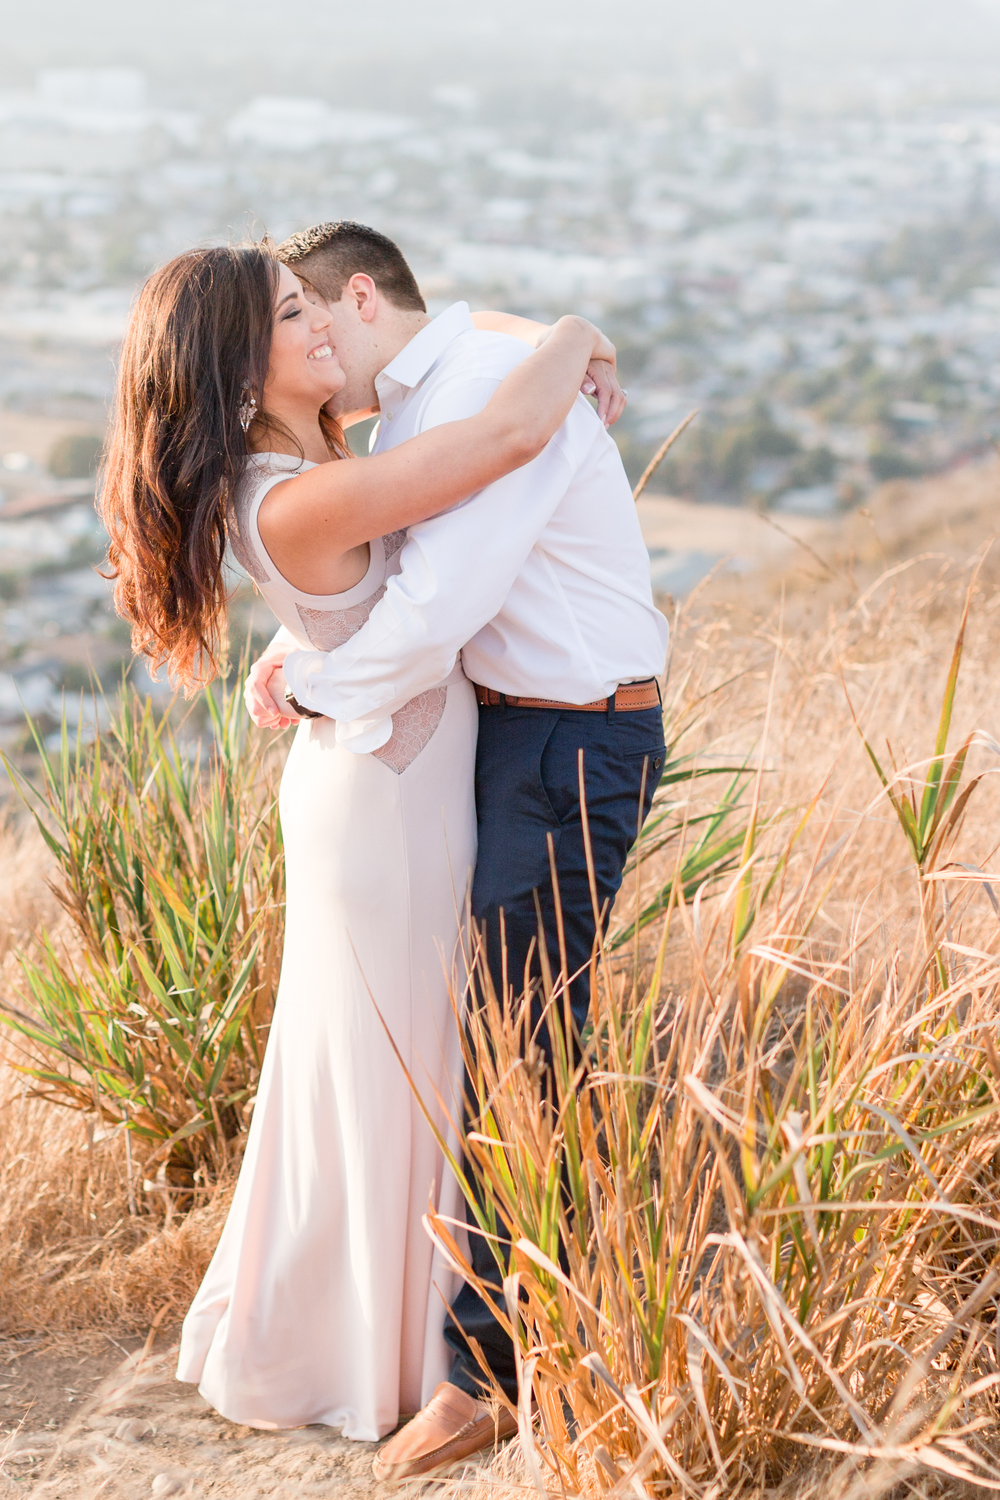 CourtneyPaigePhotography_EngagementPhotography_Soto-62.jpg